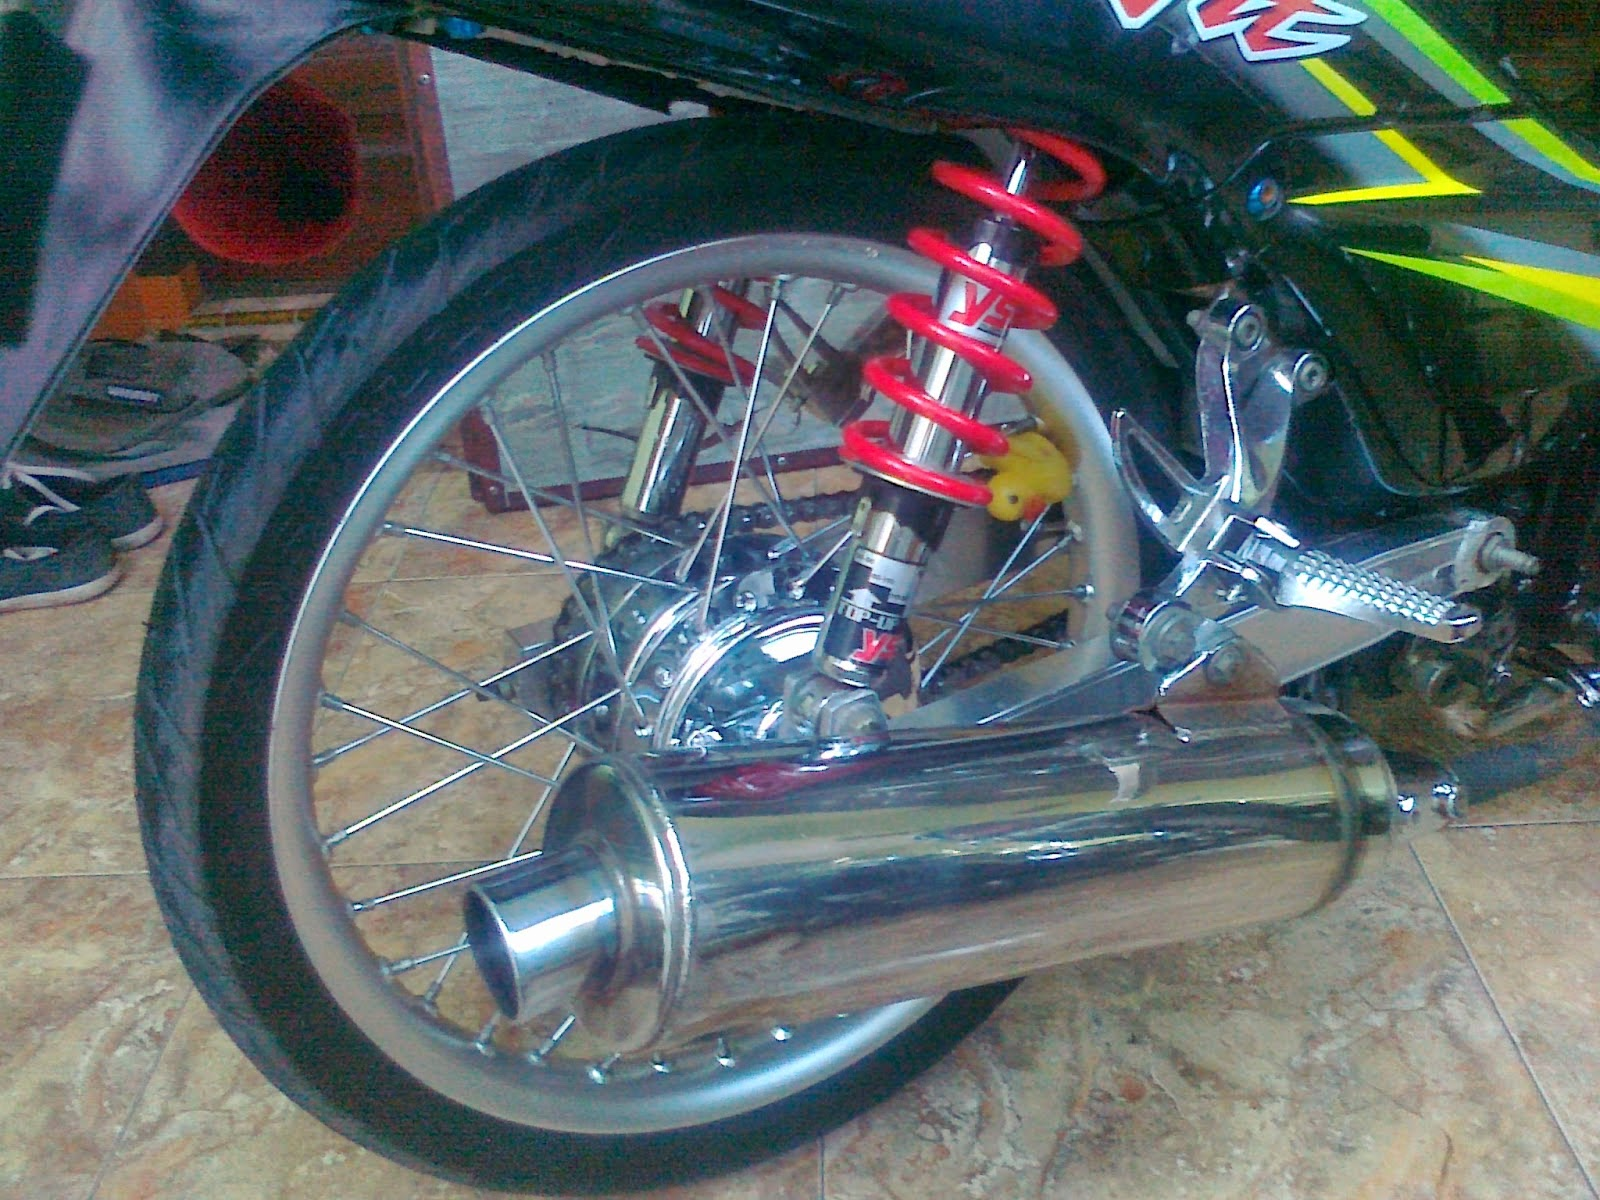 Revo Fit fi Modifikasi Motor Revo Fit